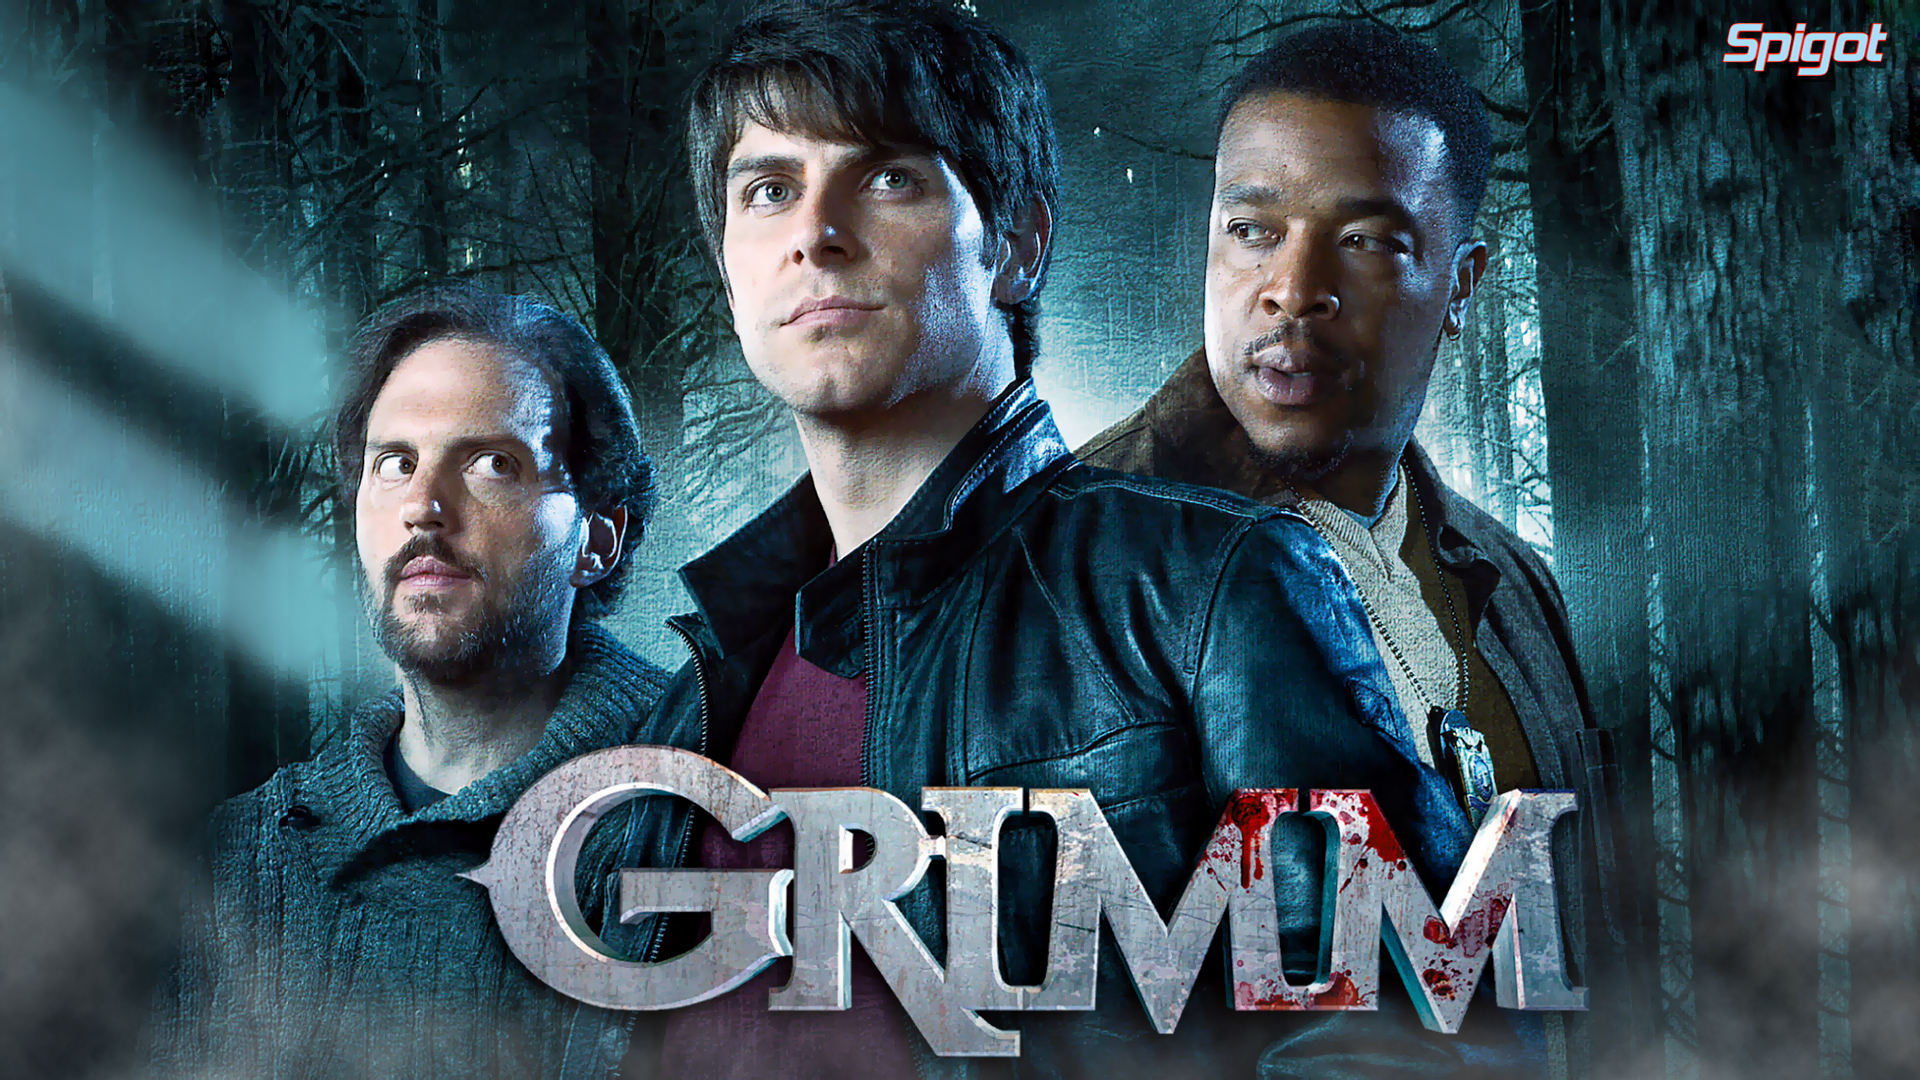 https://georgespigot.files.wordpress.com/2012/08/grimm-05-11.jpg